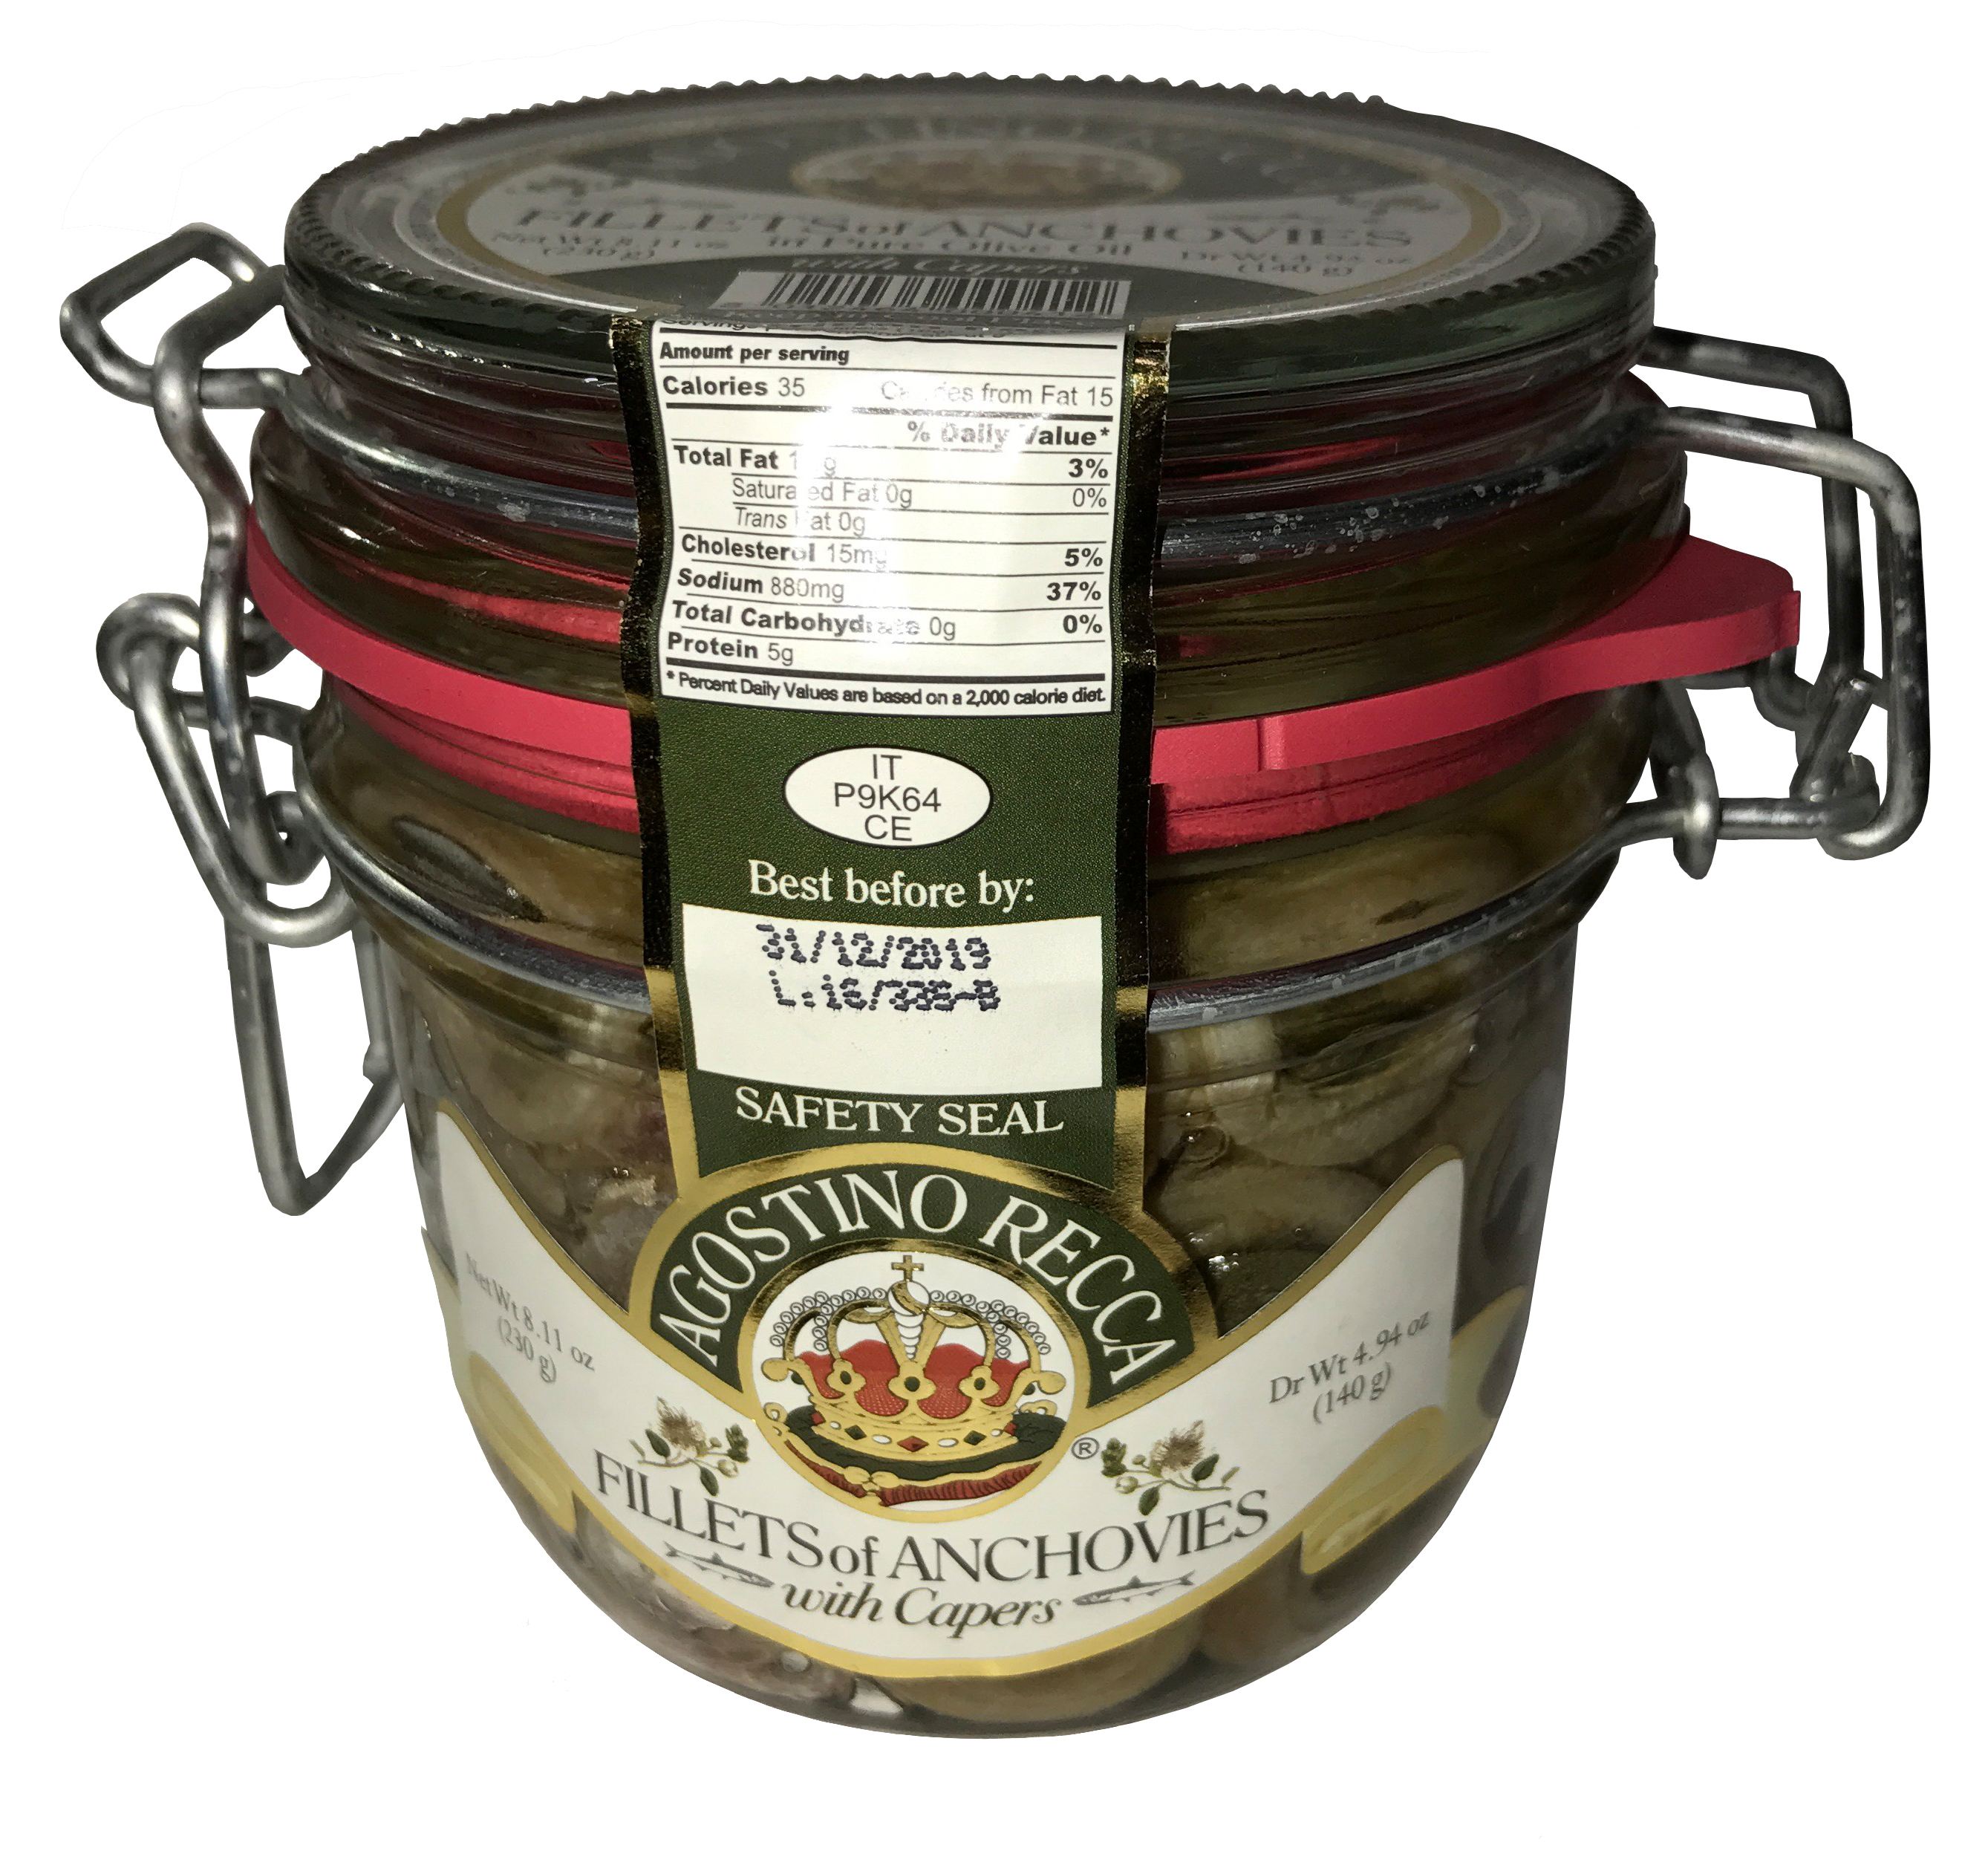 Agostino Recca Fillets of Anchovies With Capers in Pure Olive Oil Net weight 8.11 oz. by Agostino Recca